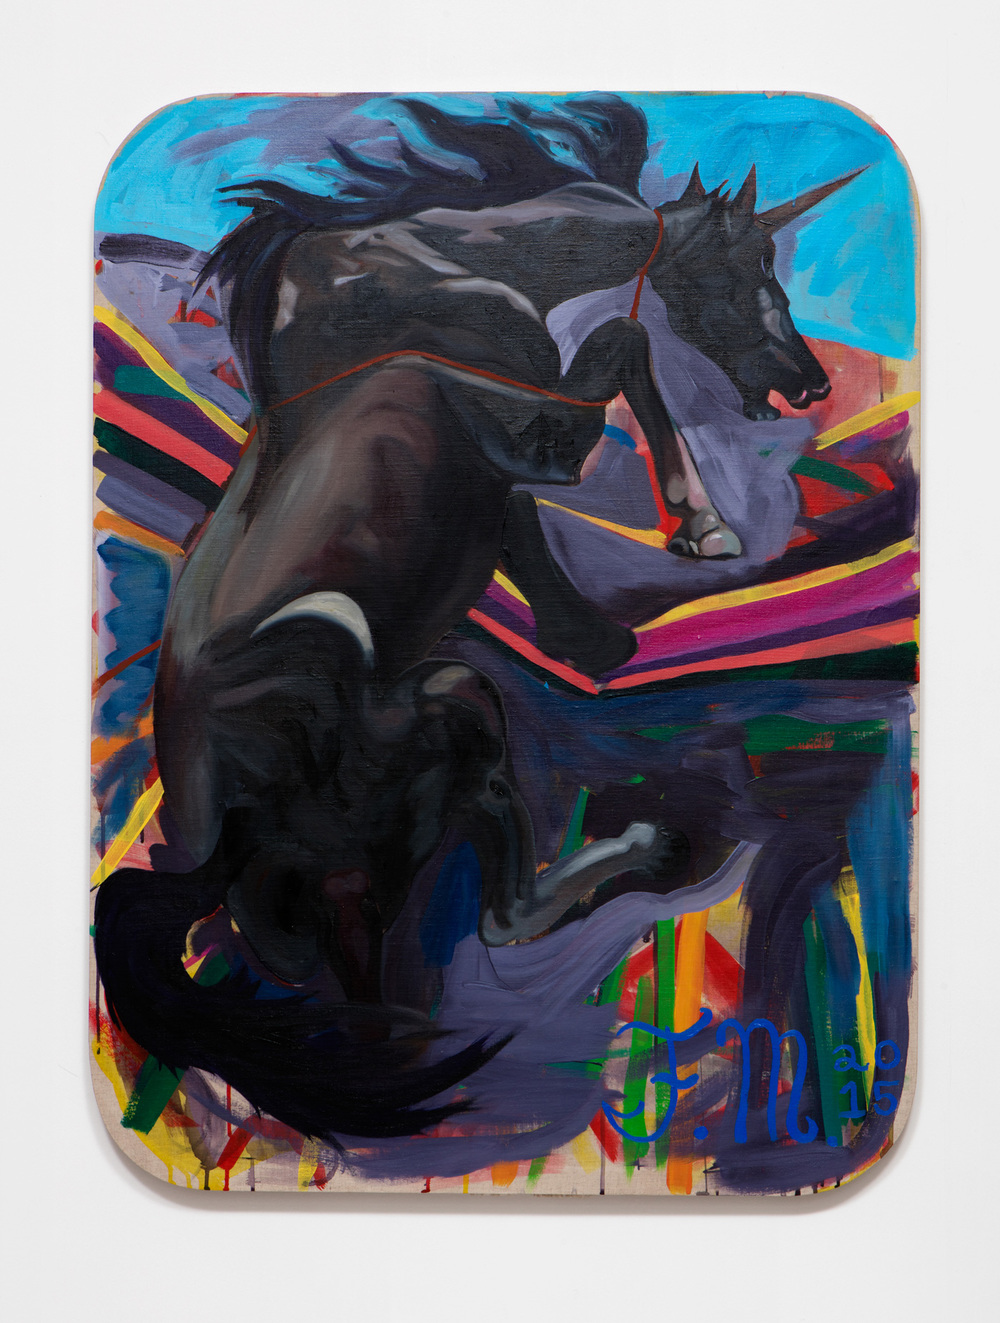 SLATE: Unicorn Painting No. 4 (Francisco Moreno – Catkin Celestial Head)  , 2015 Oil and Golden acrylic on linen stretched over custom panel 48 x 36 inches